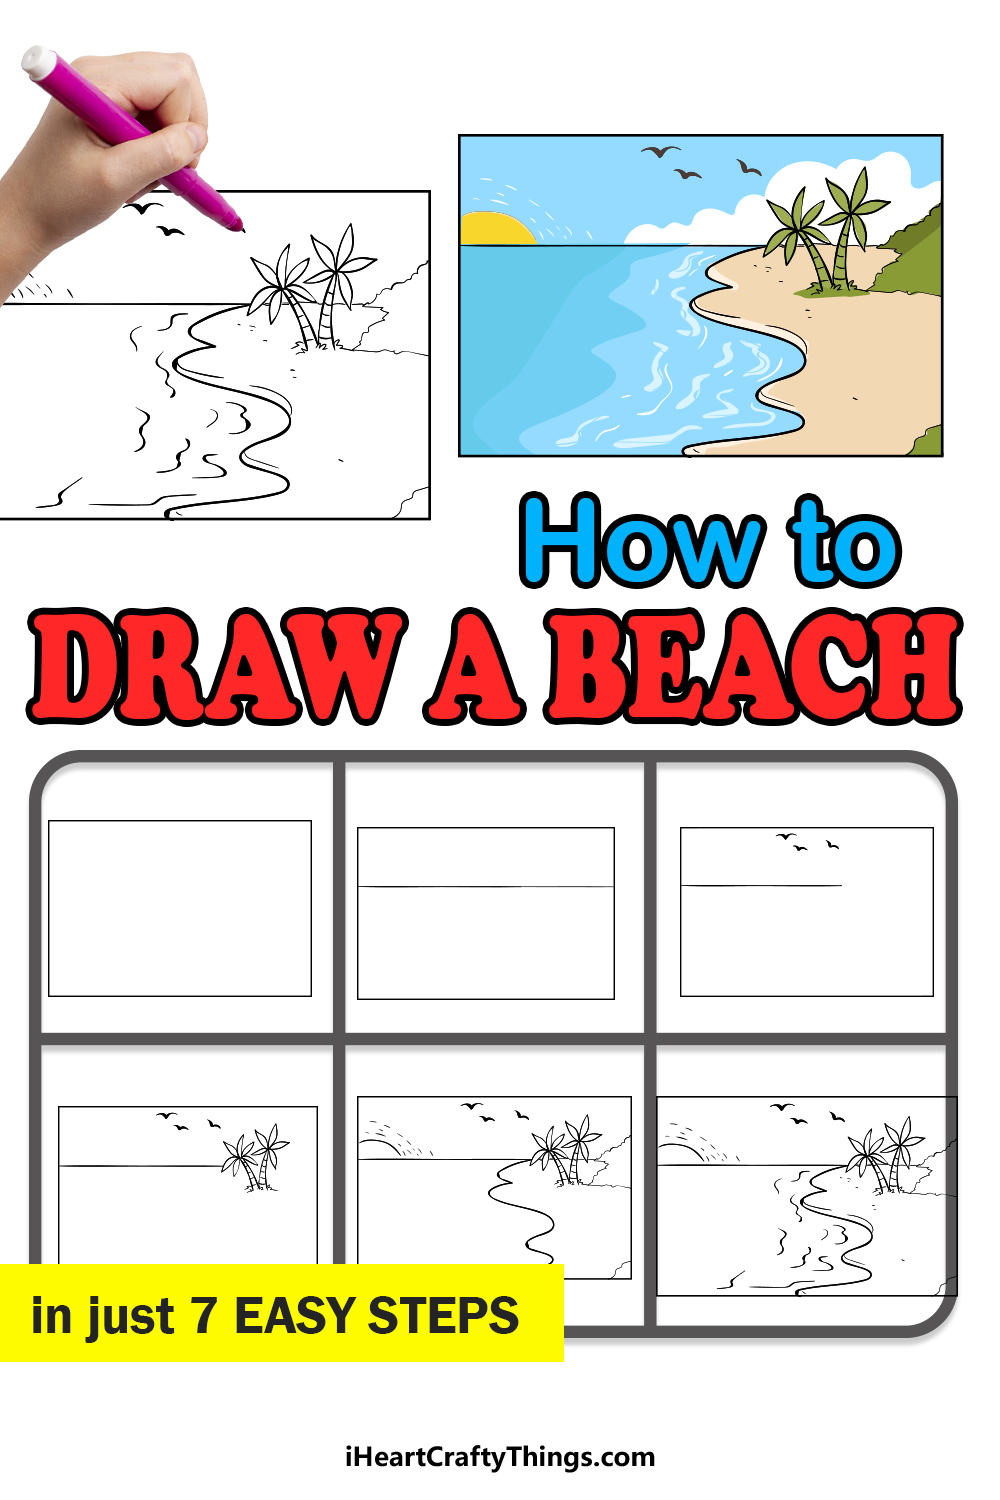 how to draw a beach in 7 easy steps